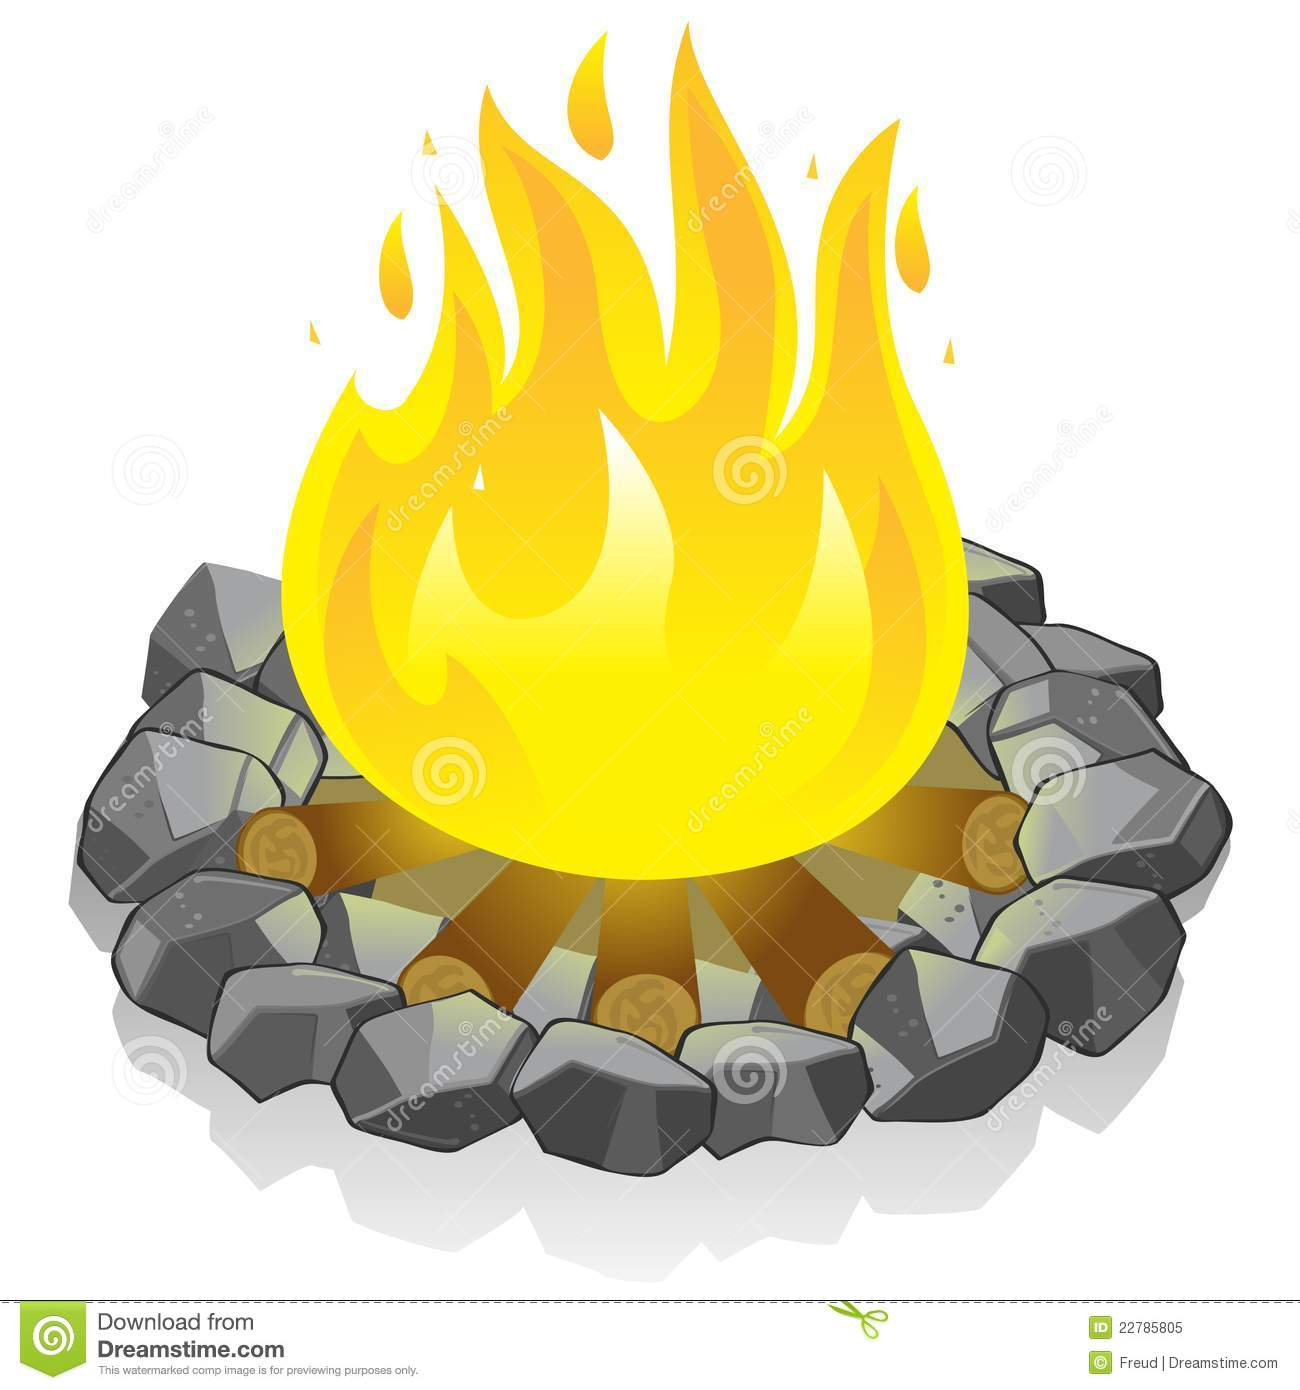 feu de camp photo libre de droits image 22785805. Black Bedroom Furniture Sets. Home Design Ideas